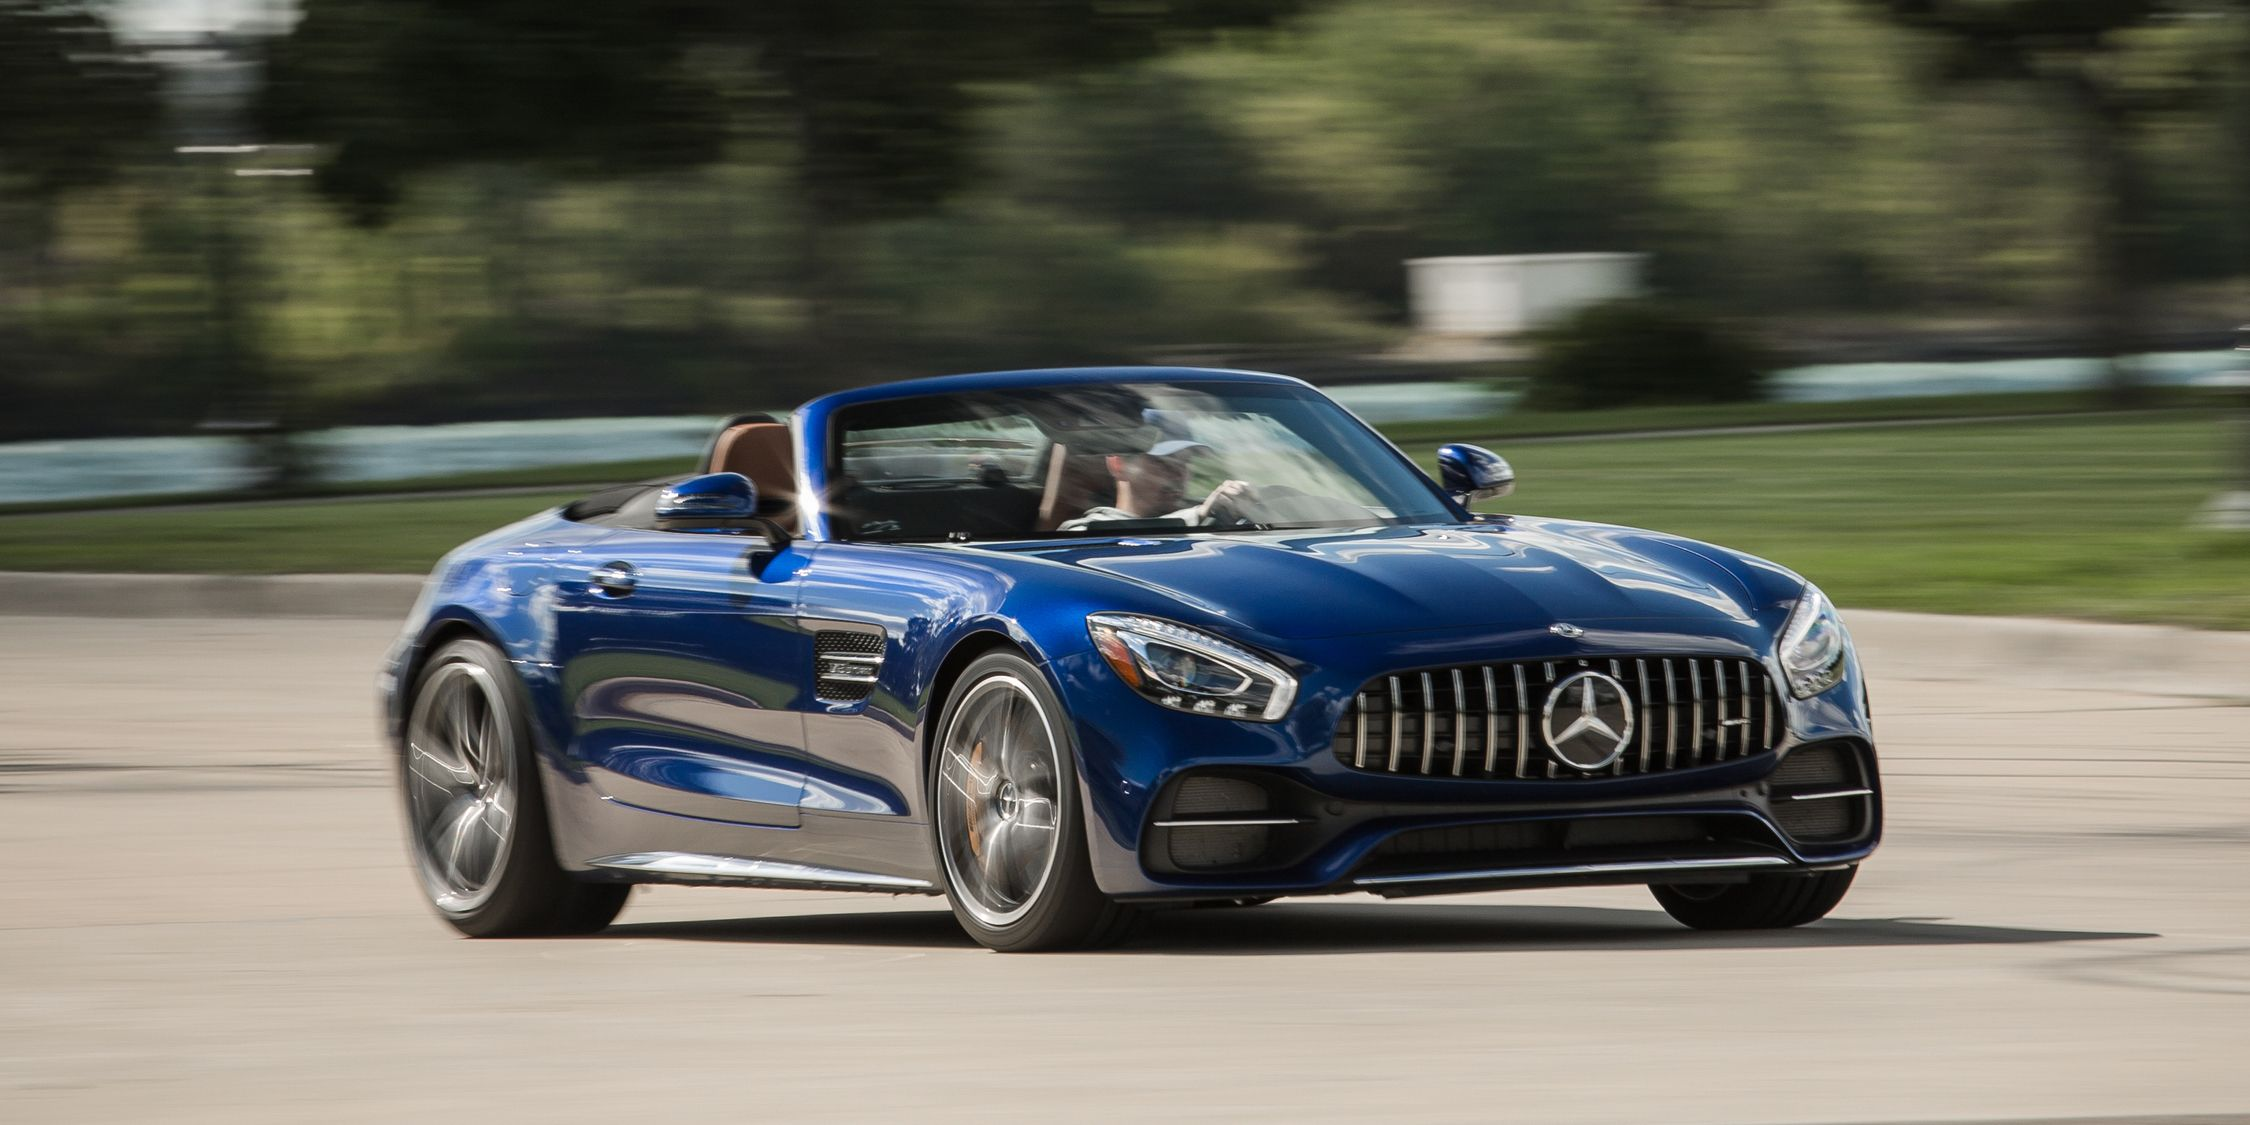 2018 Mercedes Amg Gt C Roadster Full Test Review Car And Driver